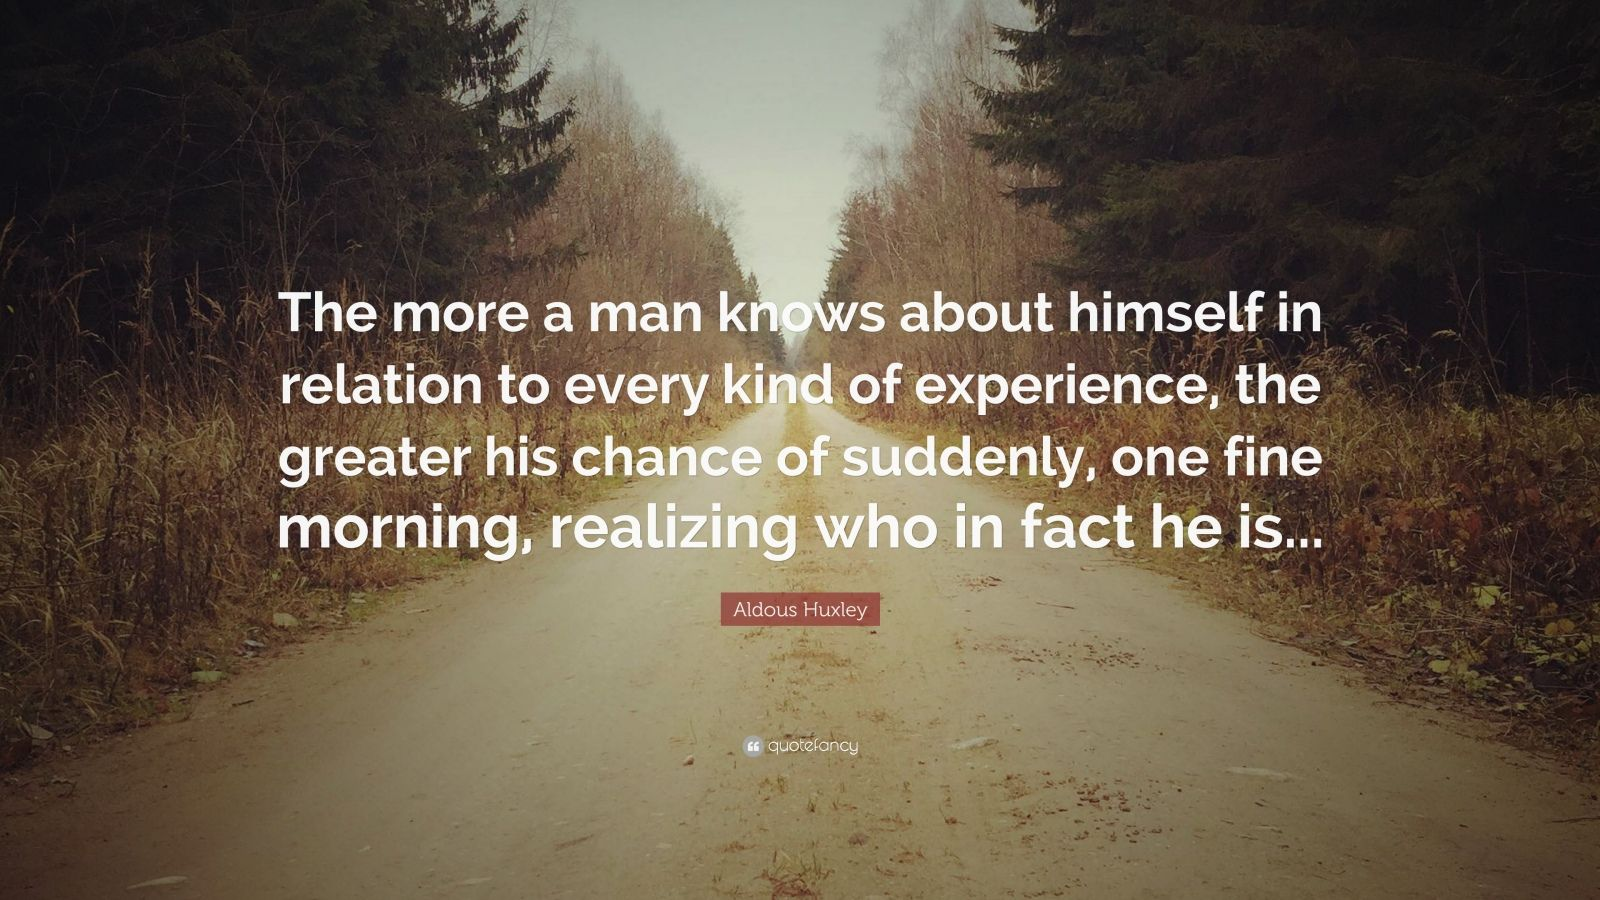 "Aldous Huxley Quote: ""The more a man knows about himself in relation to every kind of experience, the greater his chance of suddenly, one fine morning, realizing who in fact he is..."""